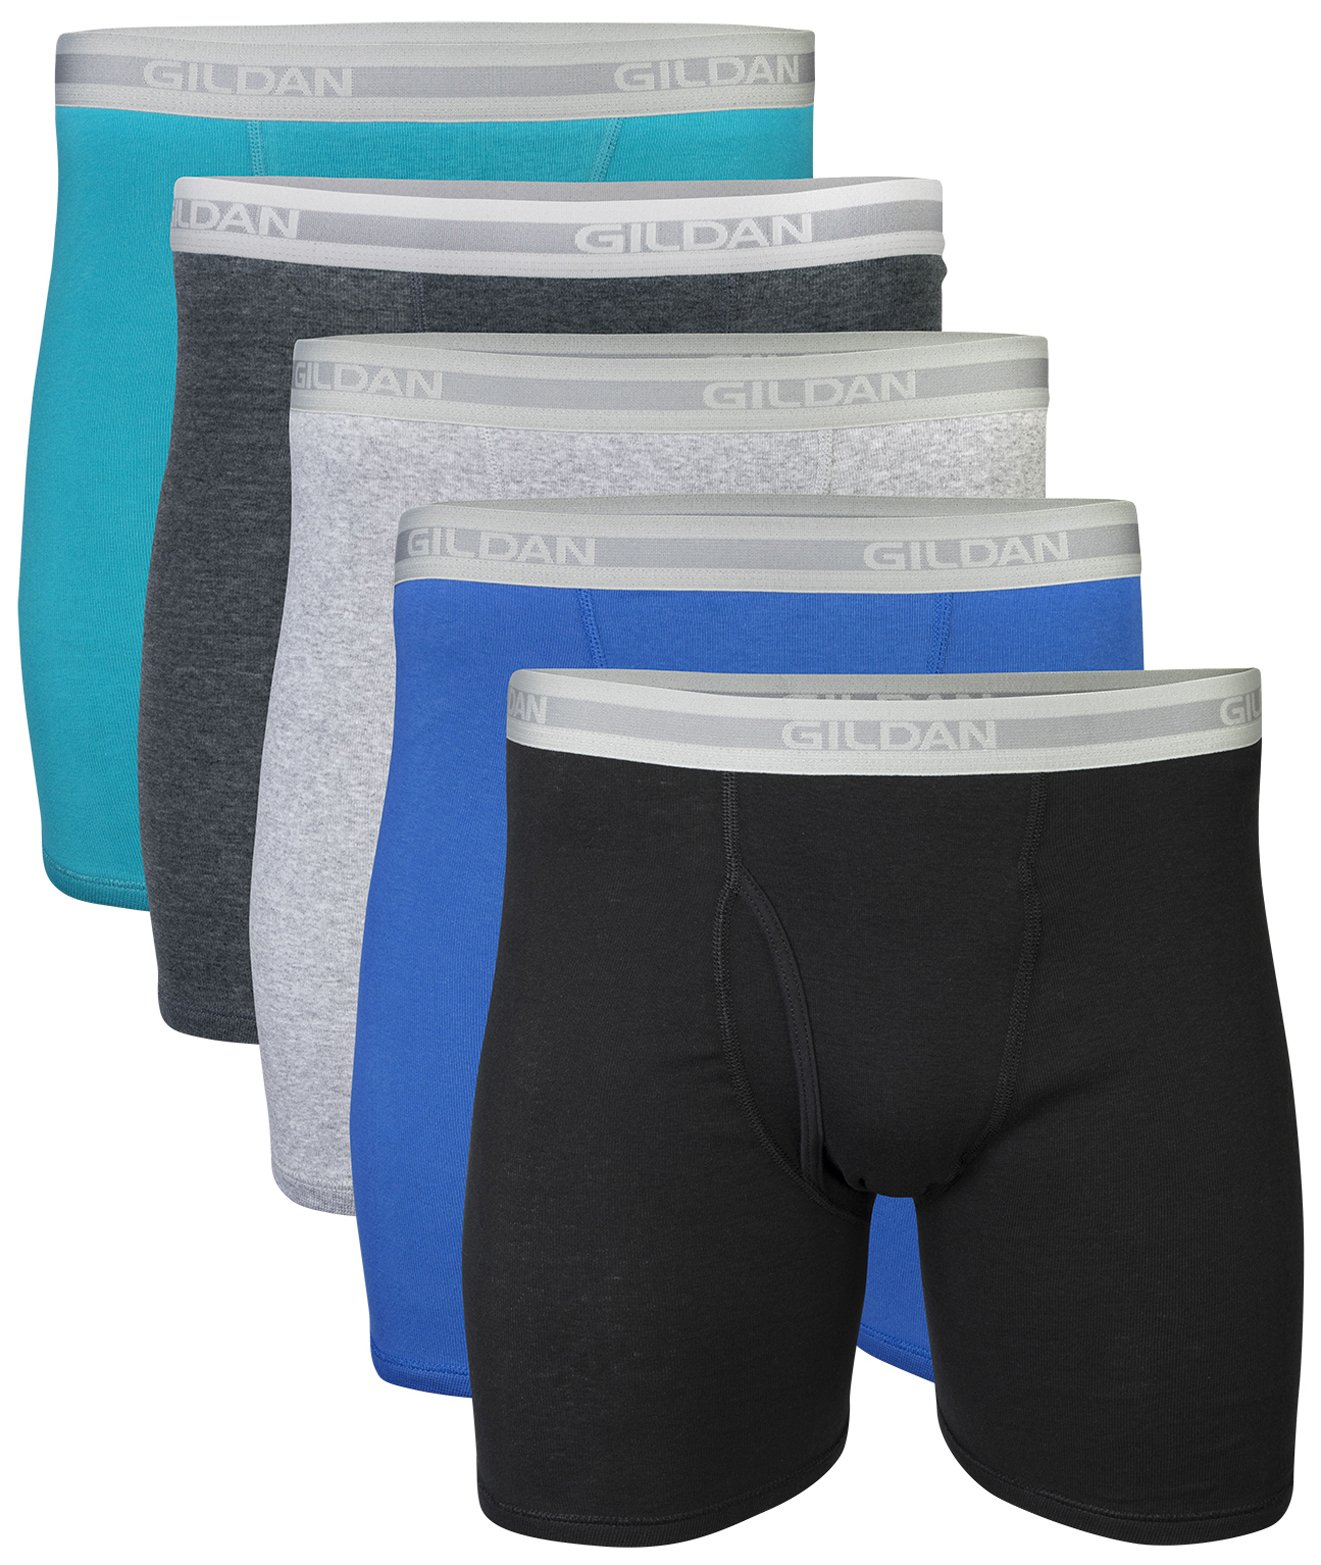 Gildan Men's Regular Leg Boxer Brief 5 Pack, Large, Mixed Blue/Grey